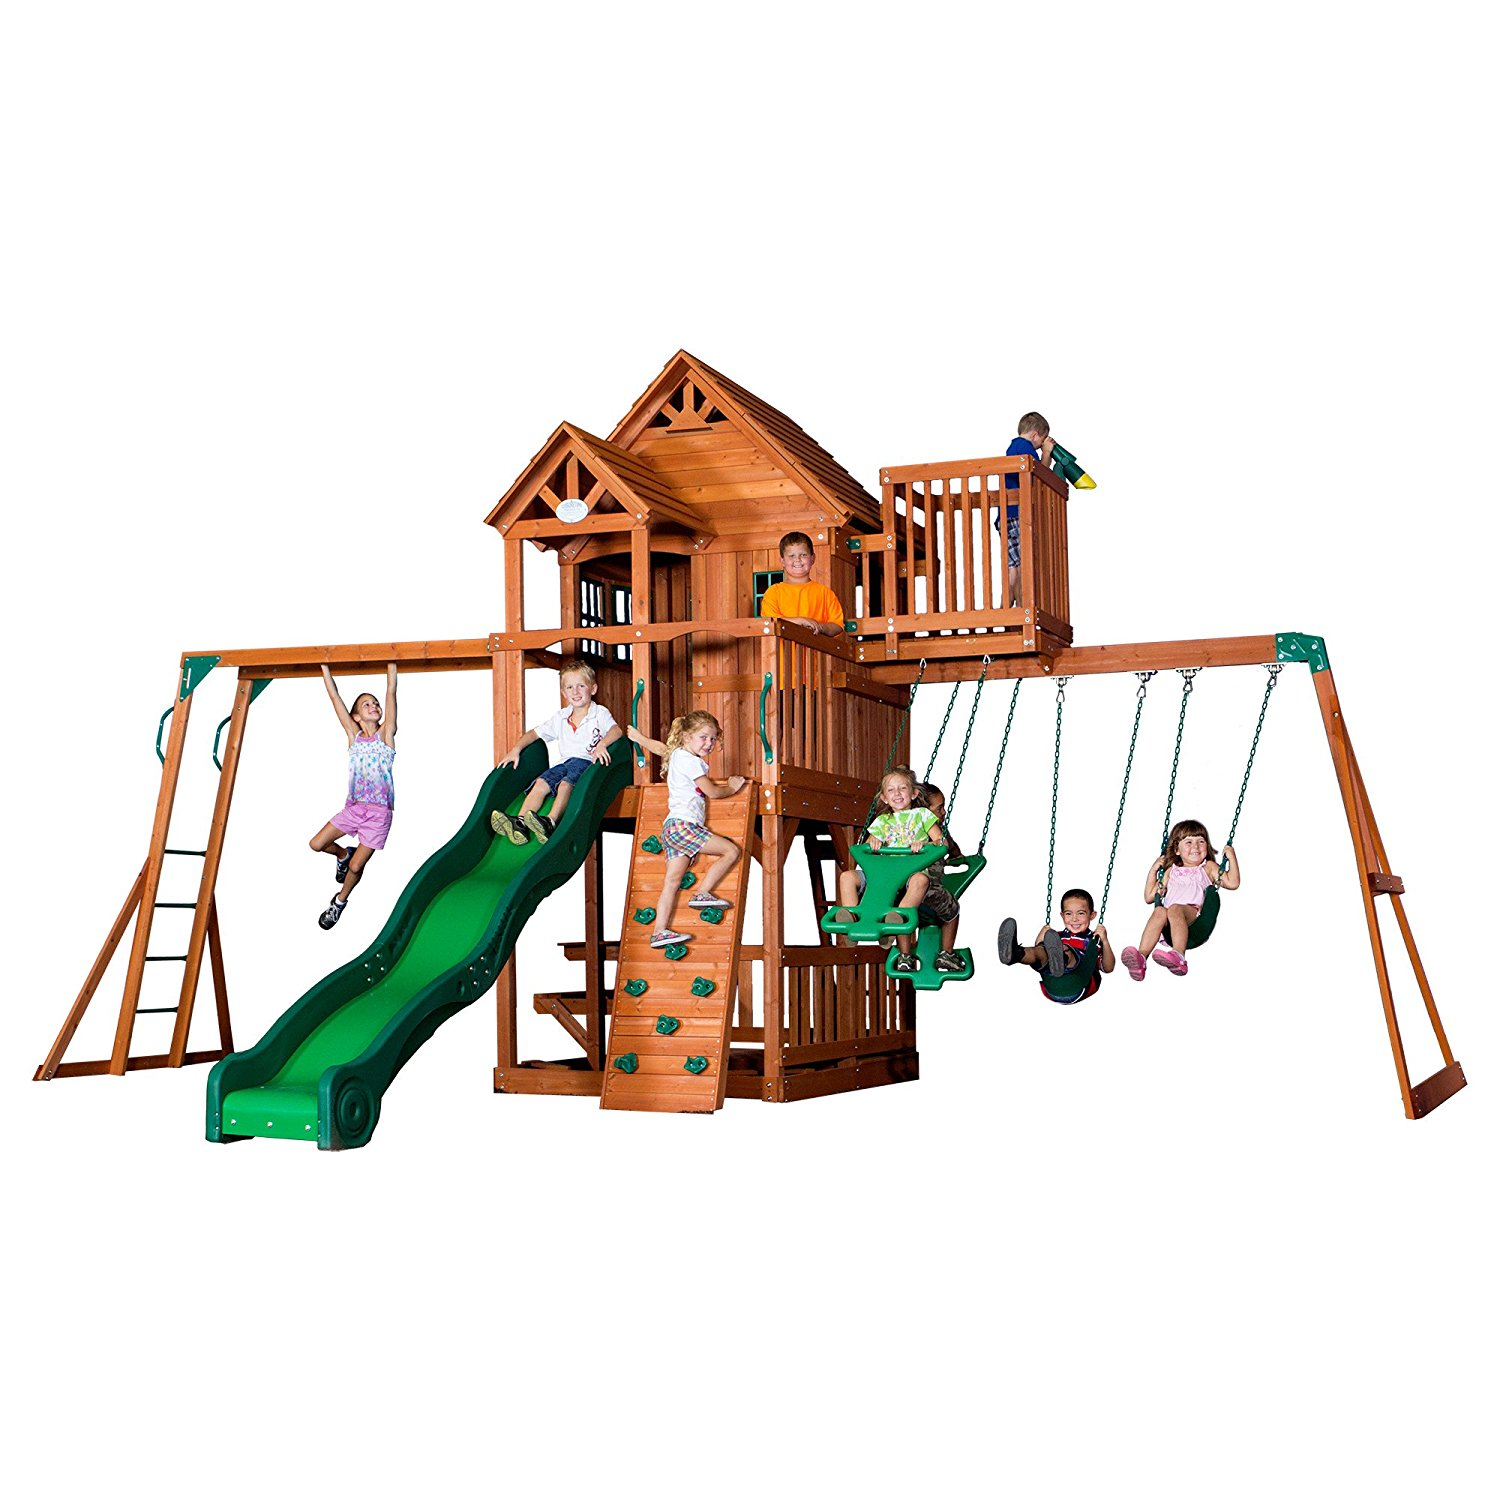 The Top 5 Best Backyard Playsets For Children Of All Ages